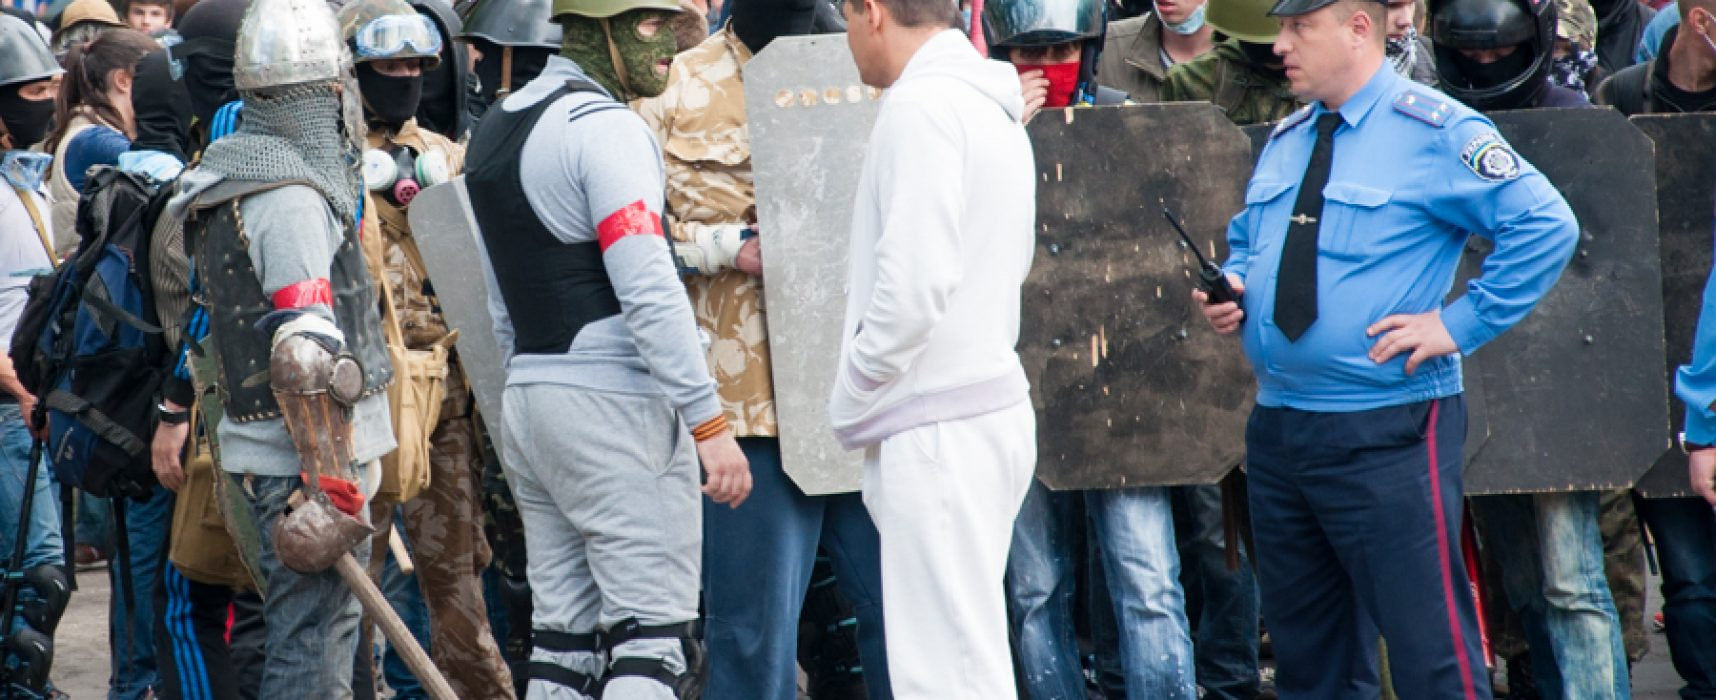 Lie from Tymoshenko: the police did everything possible to protect people in Odessa